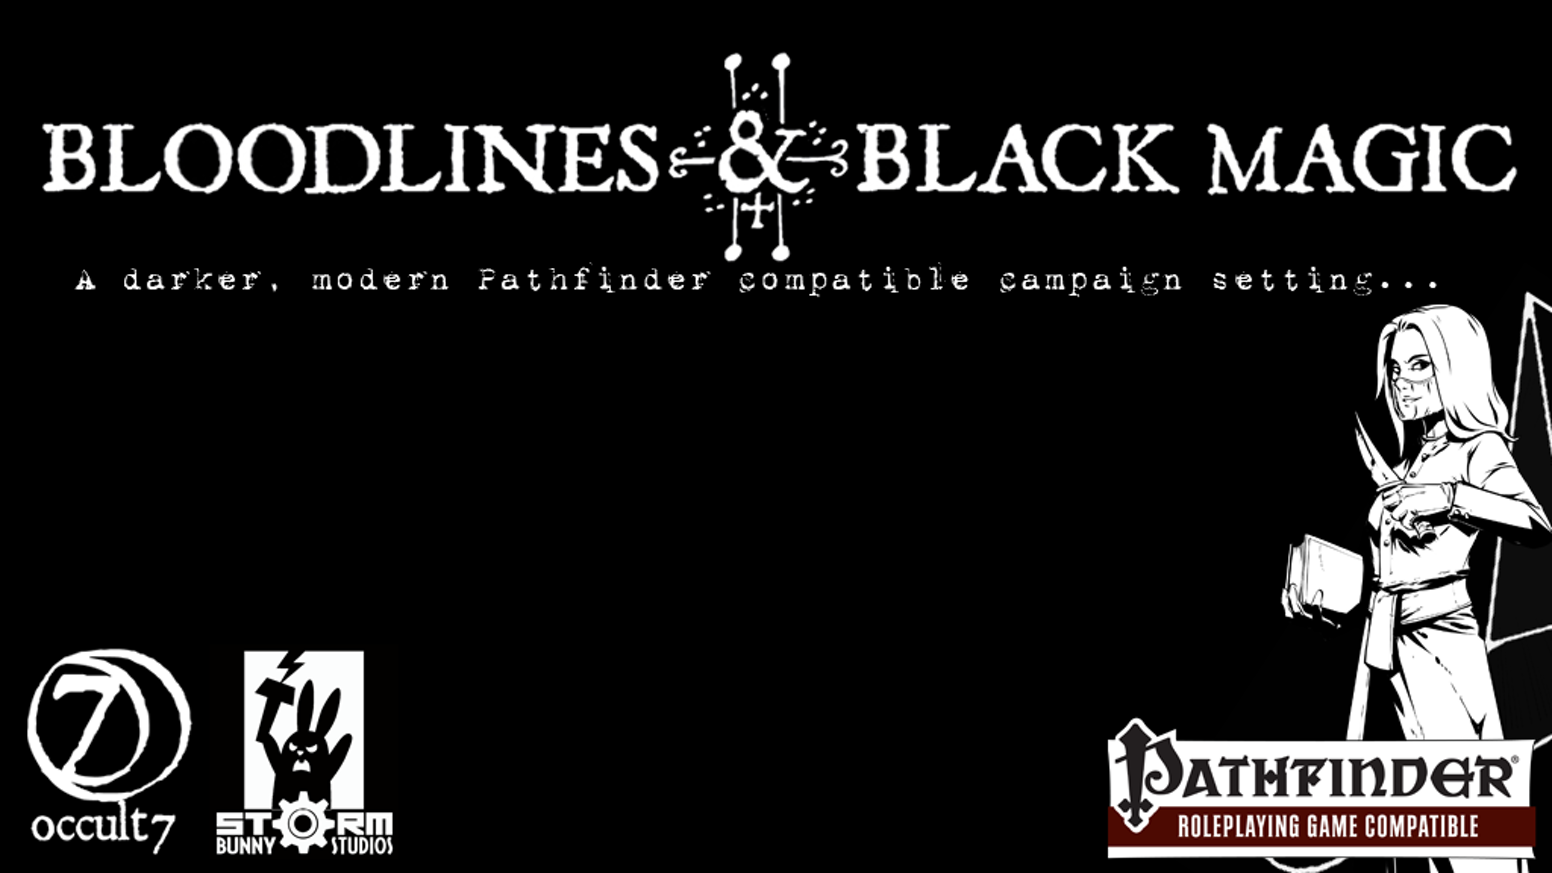 """Bloodlines & Black Magic is modern, Pathfinder-compatible supernatural campaign setting that uses the """"Occult 7"""" rules."""